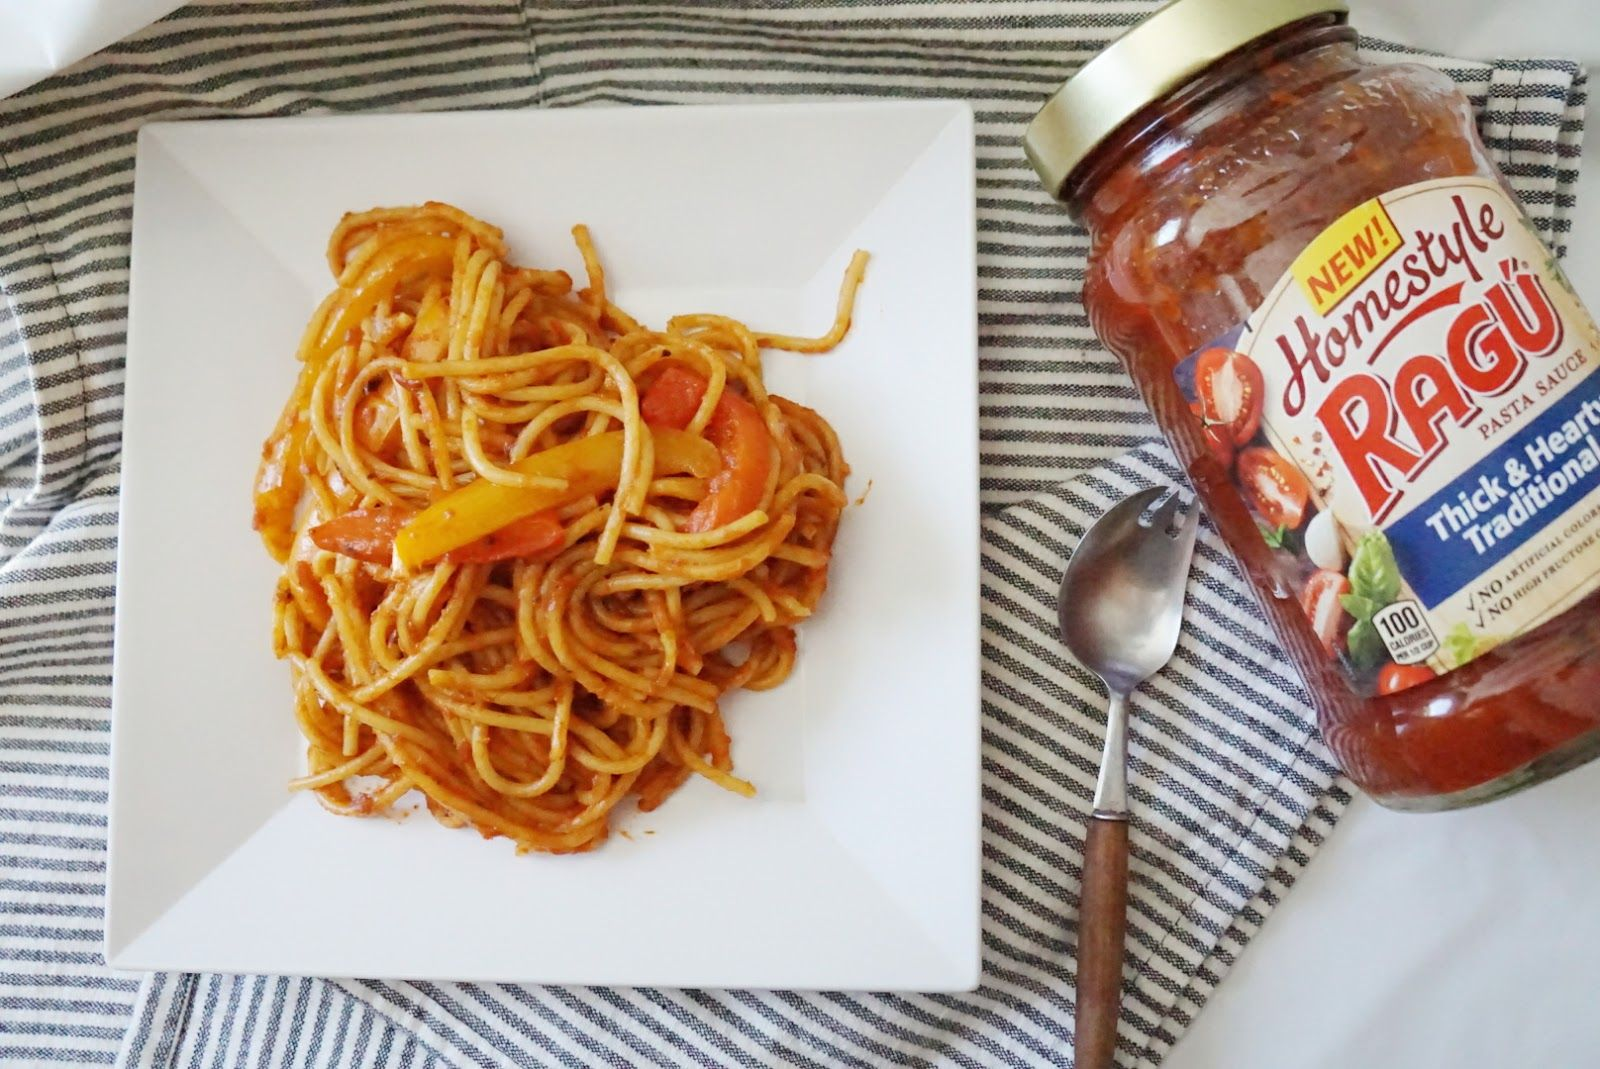 Spaghetti tradicional con chile morron https://ooh.li/21441f5   #simmeredintradition #ad         |          The Blog By Taina